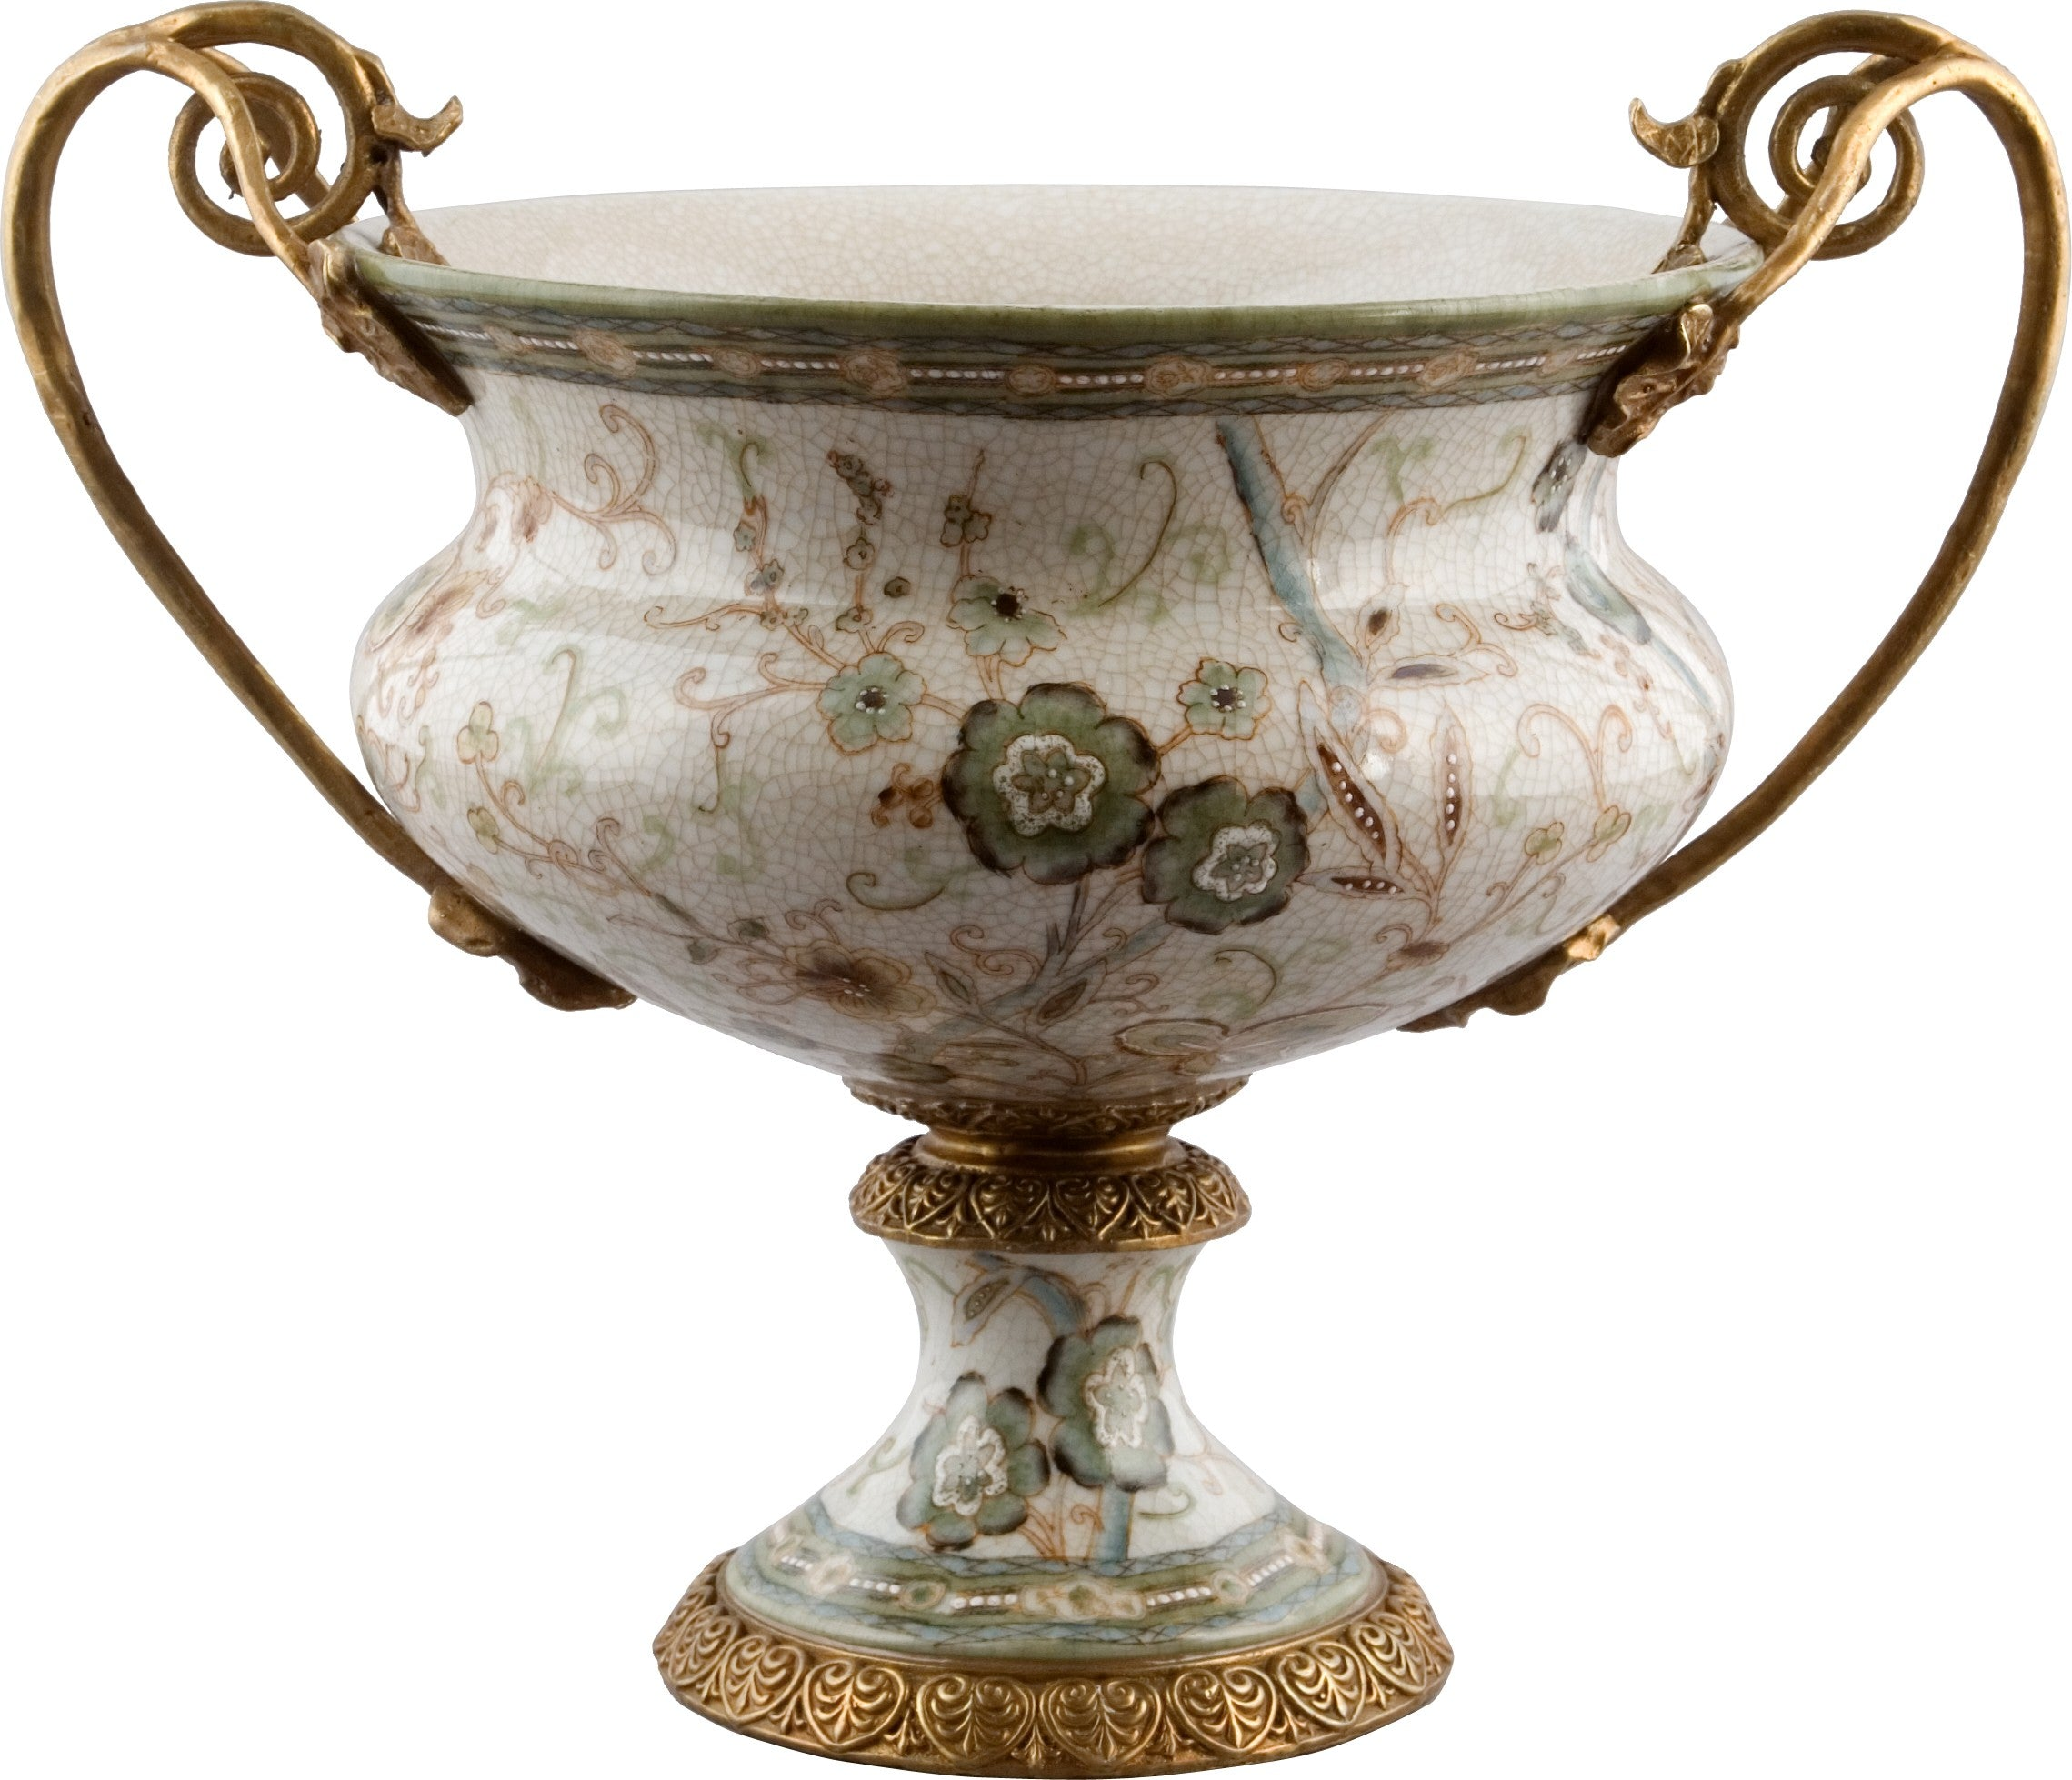 Lovecup Centerpiece Table Top Bowl with Bronze Handles and Garden Design L214